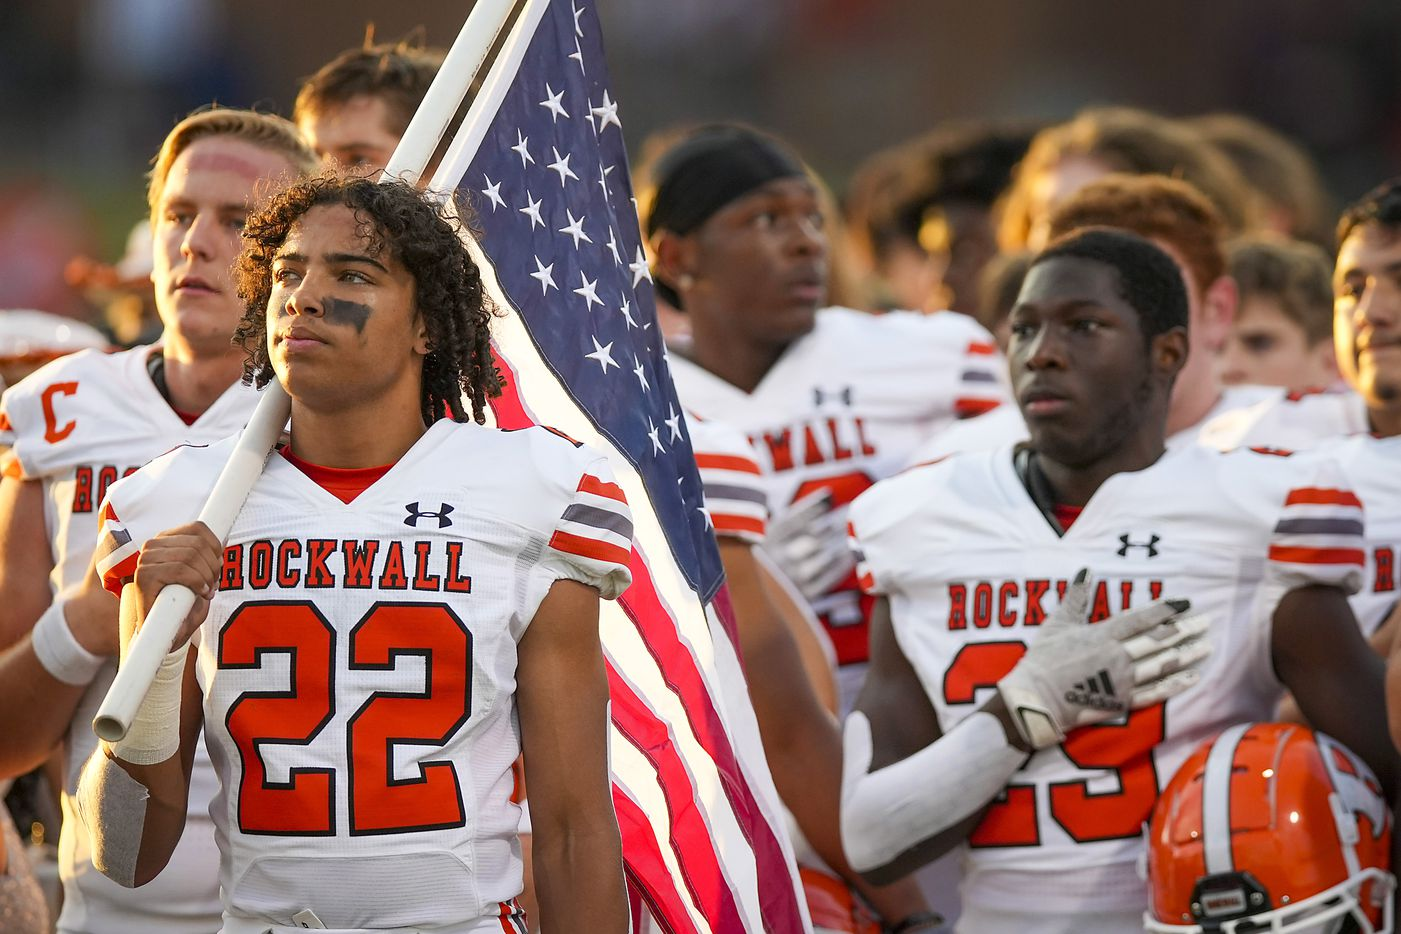 Rockwall running back  Parker Williams (22) holds the American flag as the team stands for the national anthem before a District 10-6A high school football game against Rockwall-Heath at Wilkerson-Sanders Stadium on Friday, Sept. 24, 2021, in Rockwall.